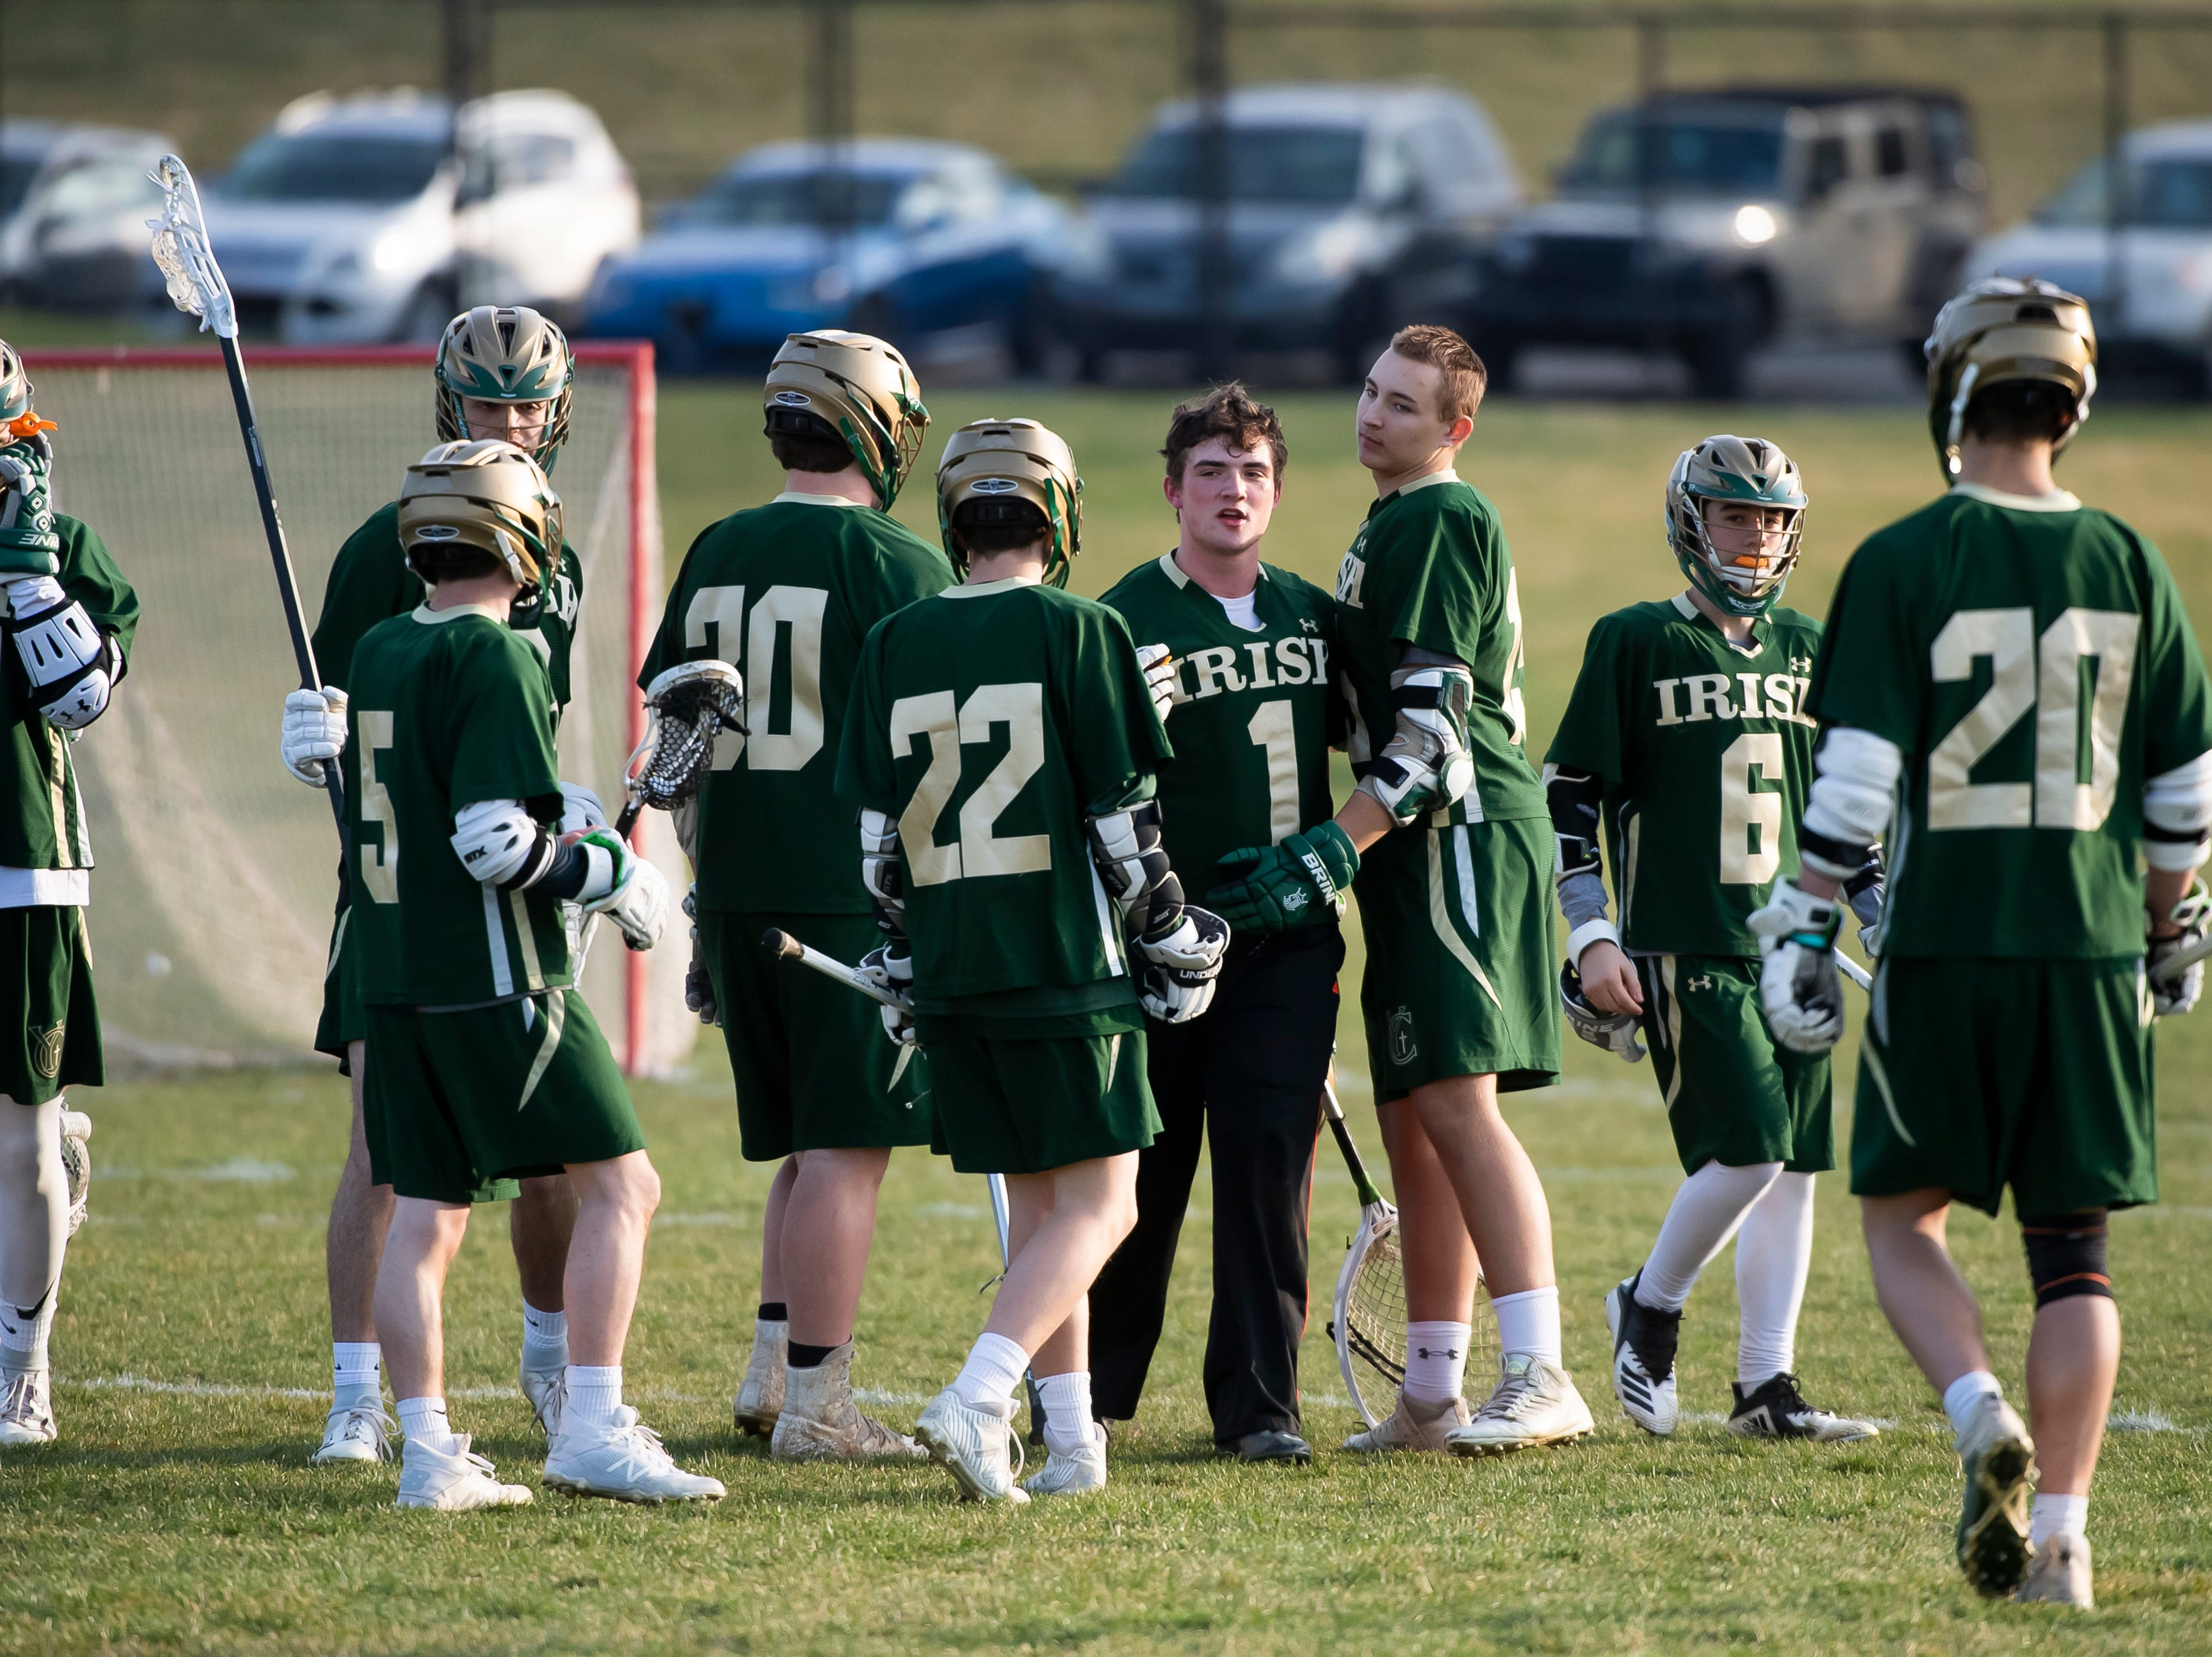 York Catholic players react after defeating New Oxford 14-8 in a YAIAA boys' lacrosse game on Thursday, April 4, 2019. York Catholic won 14-8.